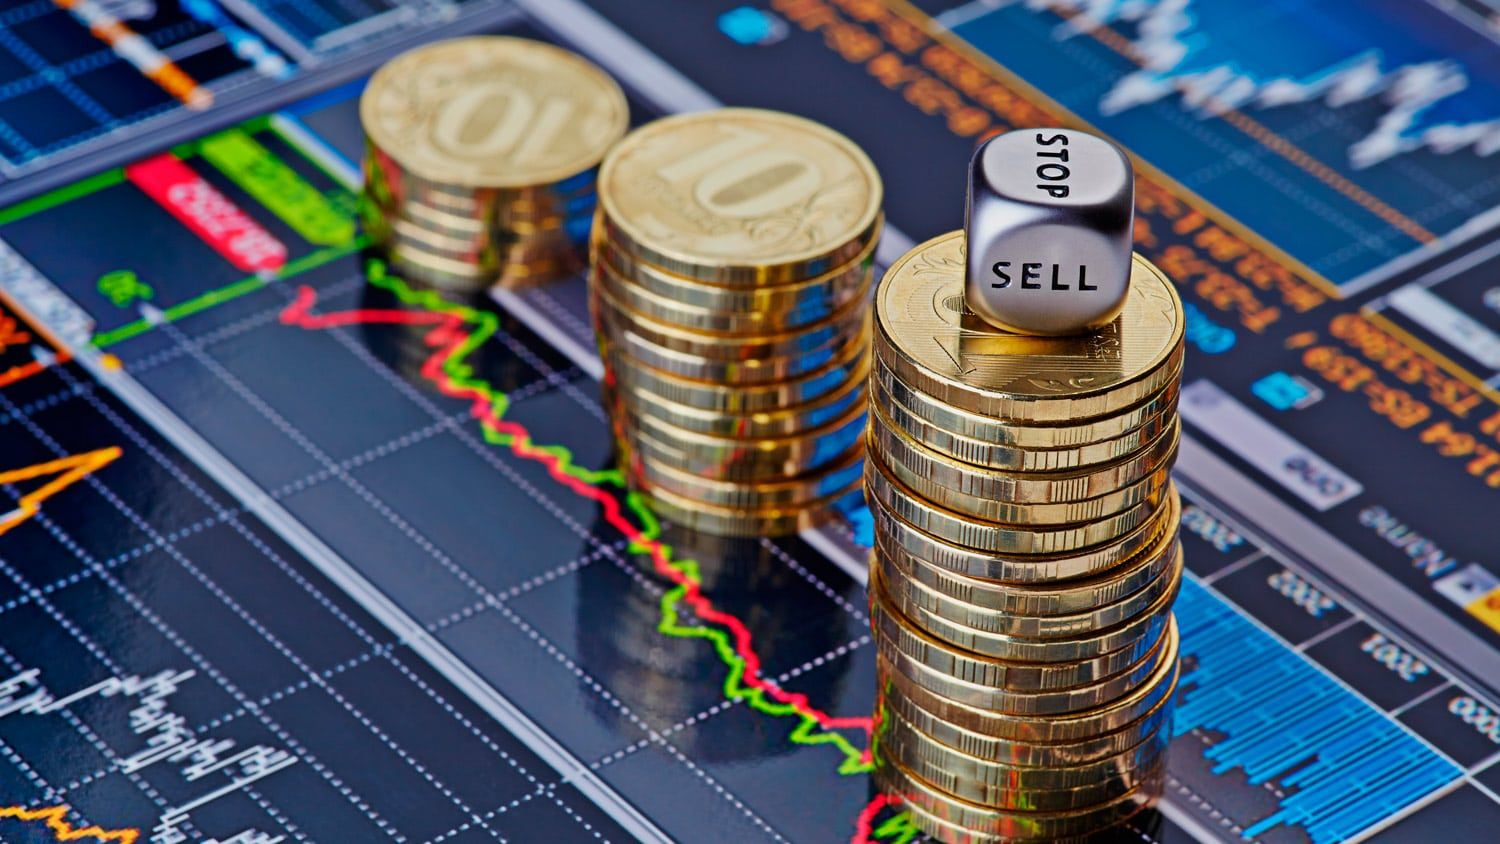 Equity market investment is an idea popping up in minds of